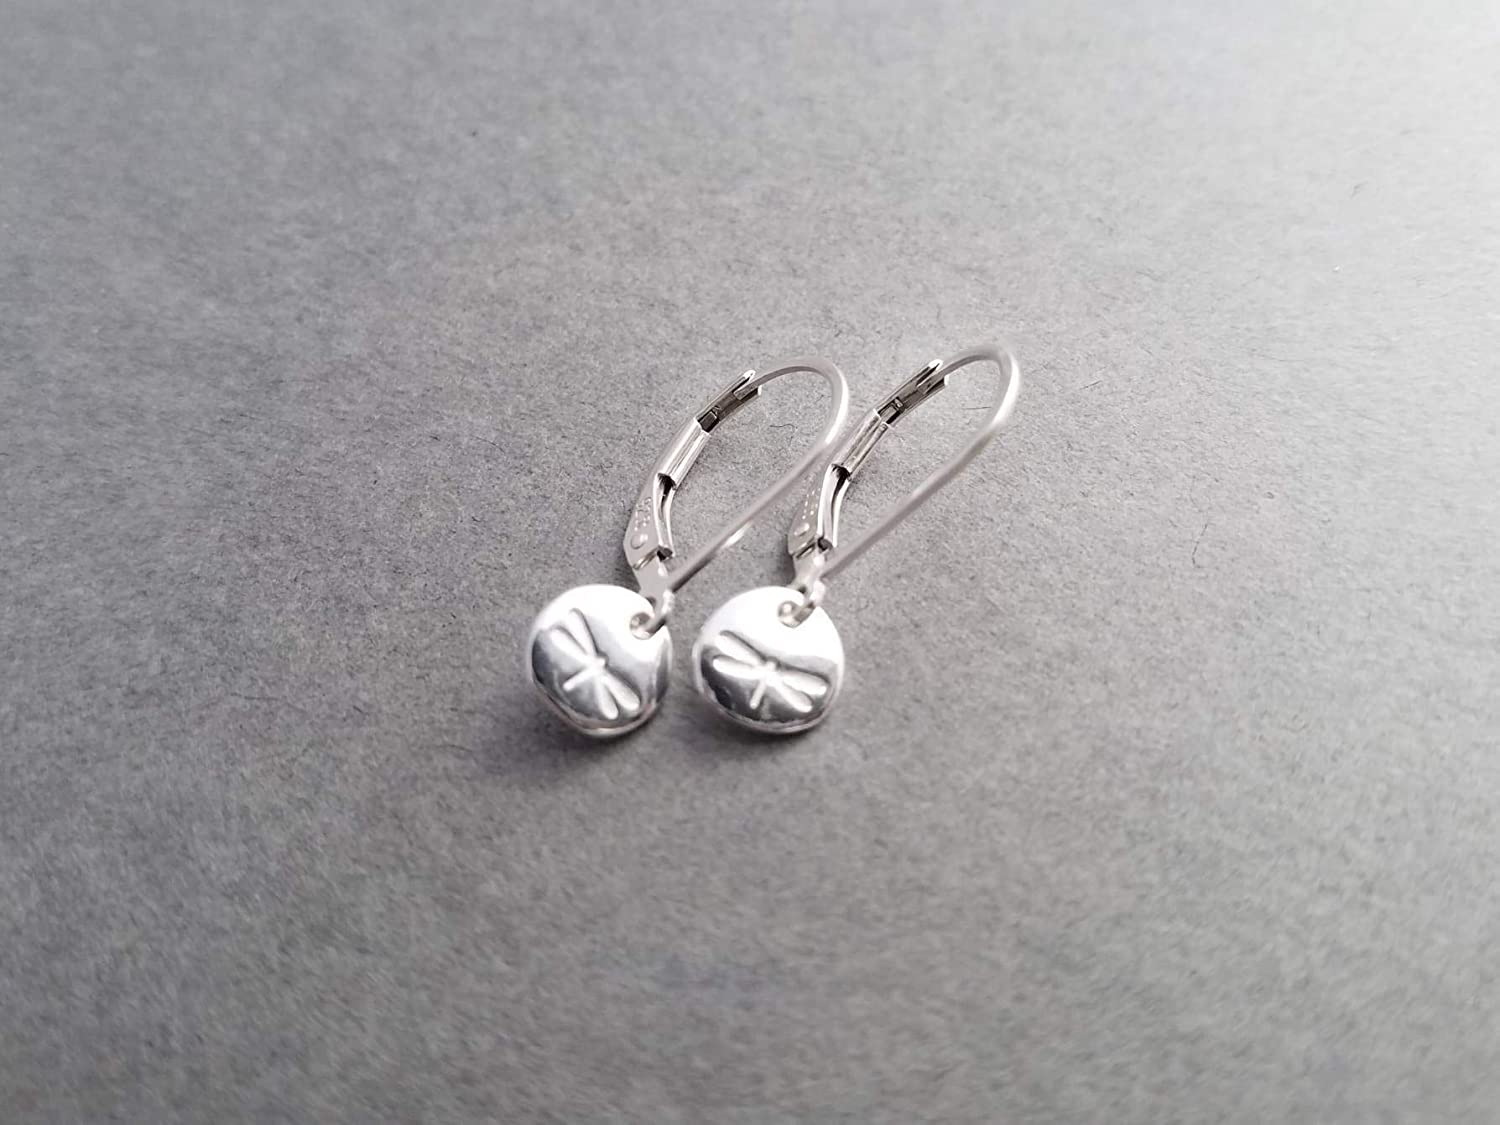 Tiny Sterling Silver Dragonfly Earrings